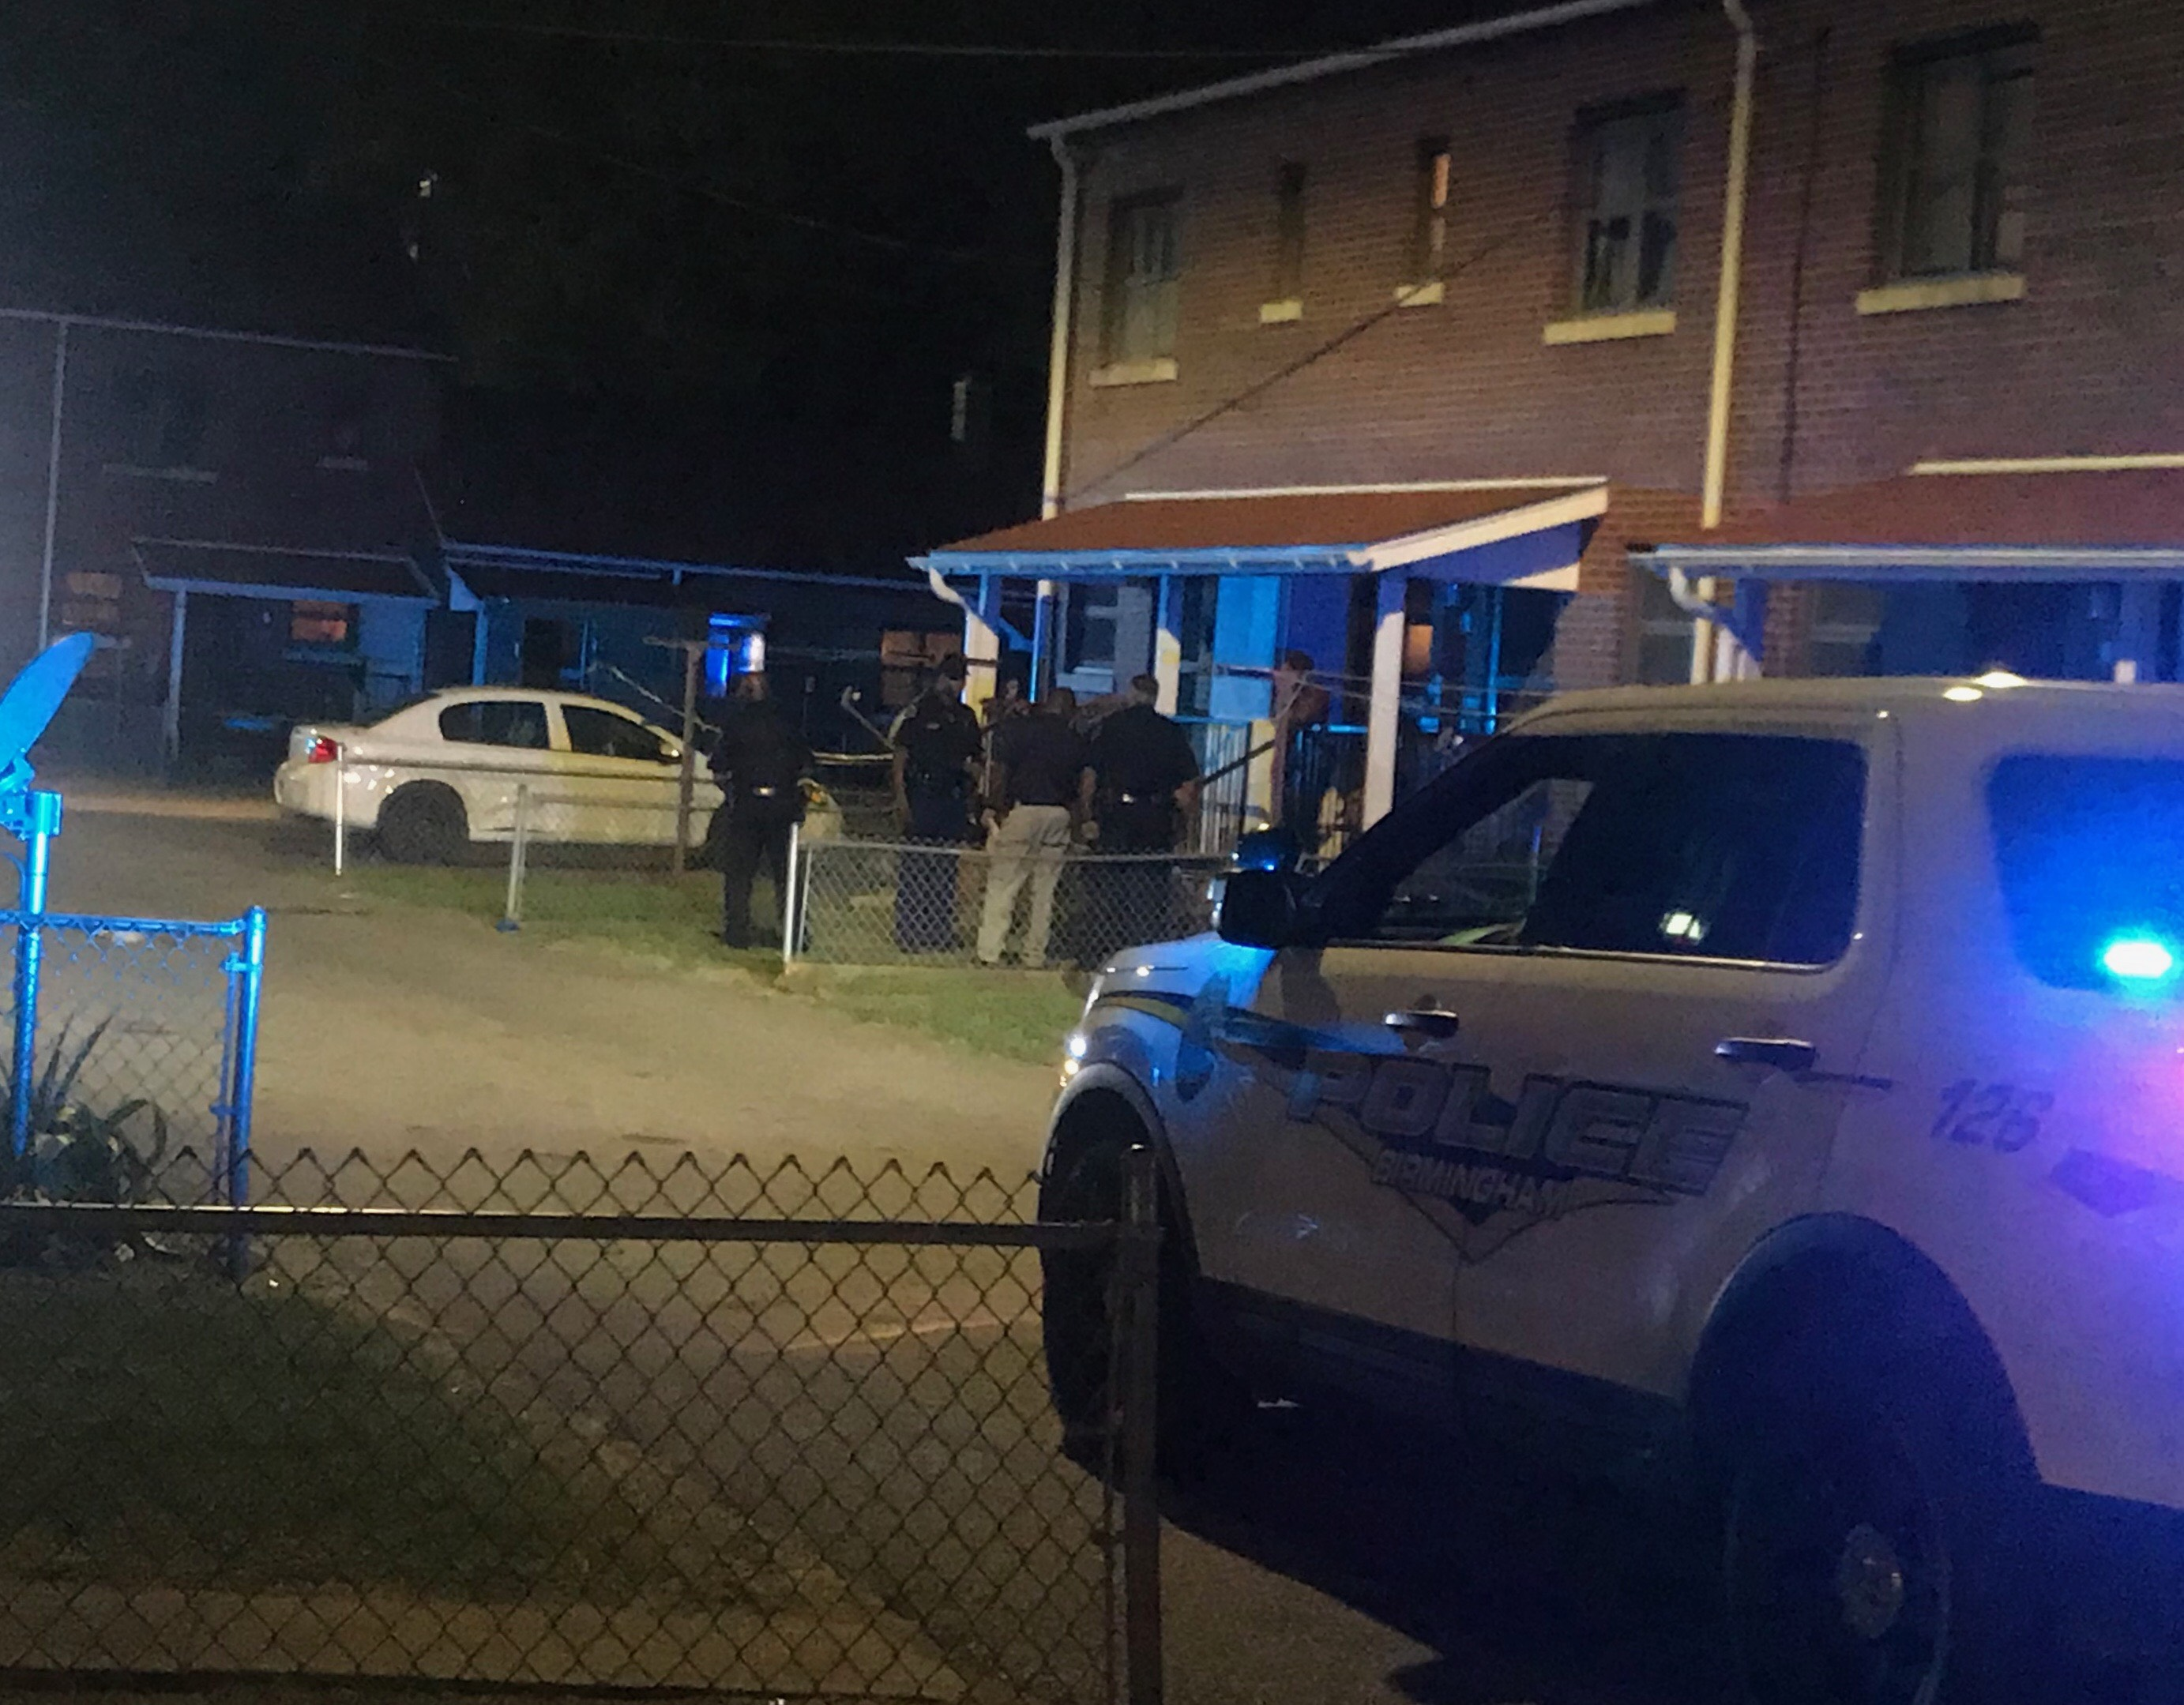 A man was critically wounded in a shooting Sunday evening, Oct. 14, 2018, in Birmingham's Smithfield public housing community. He died early Monday, Oct. 14, 2018.